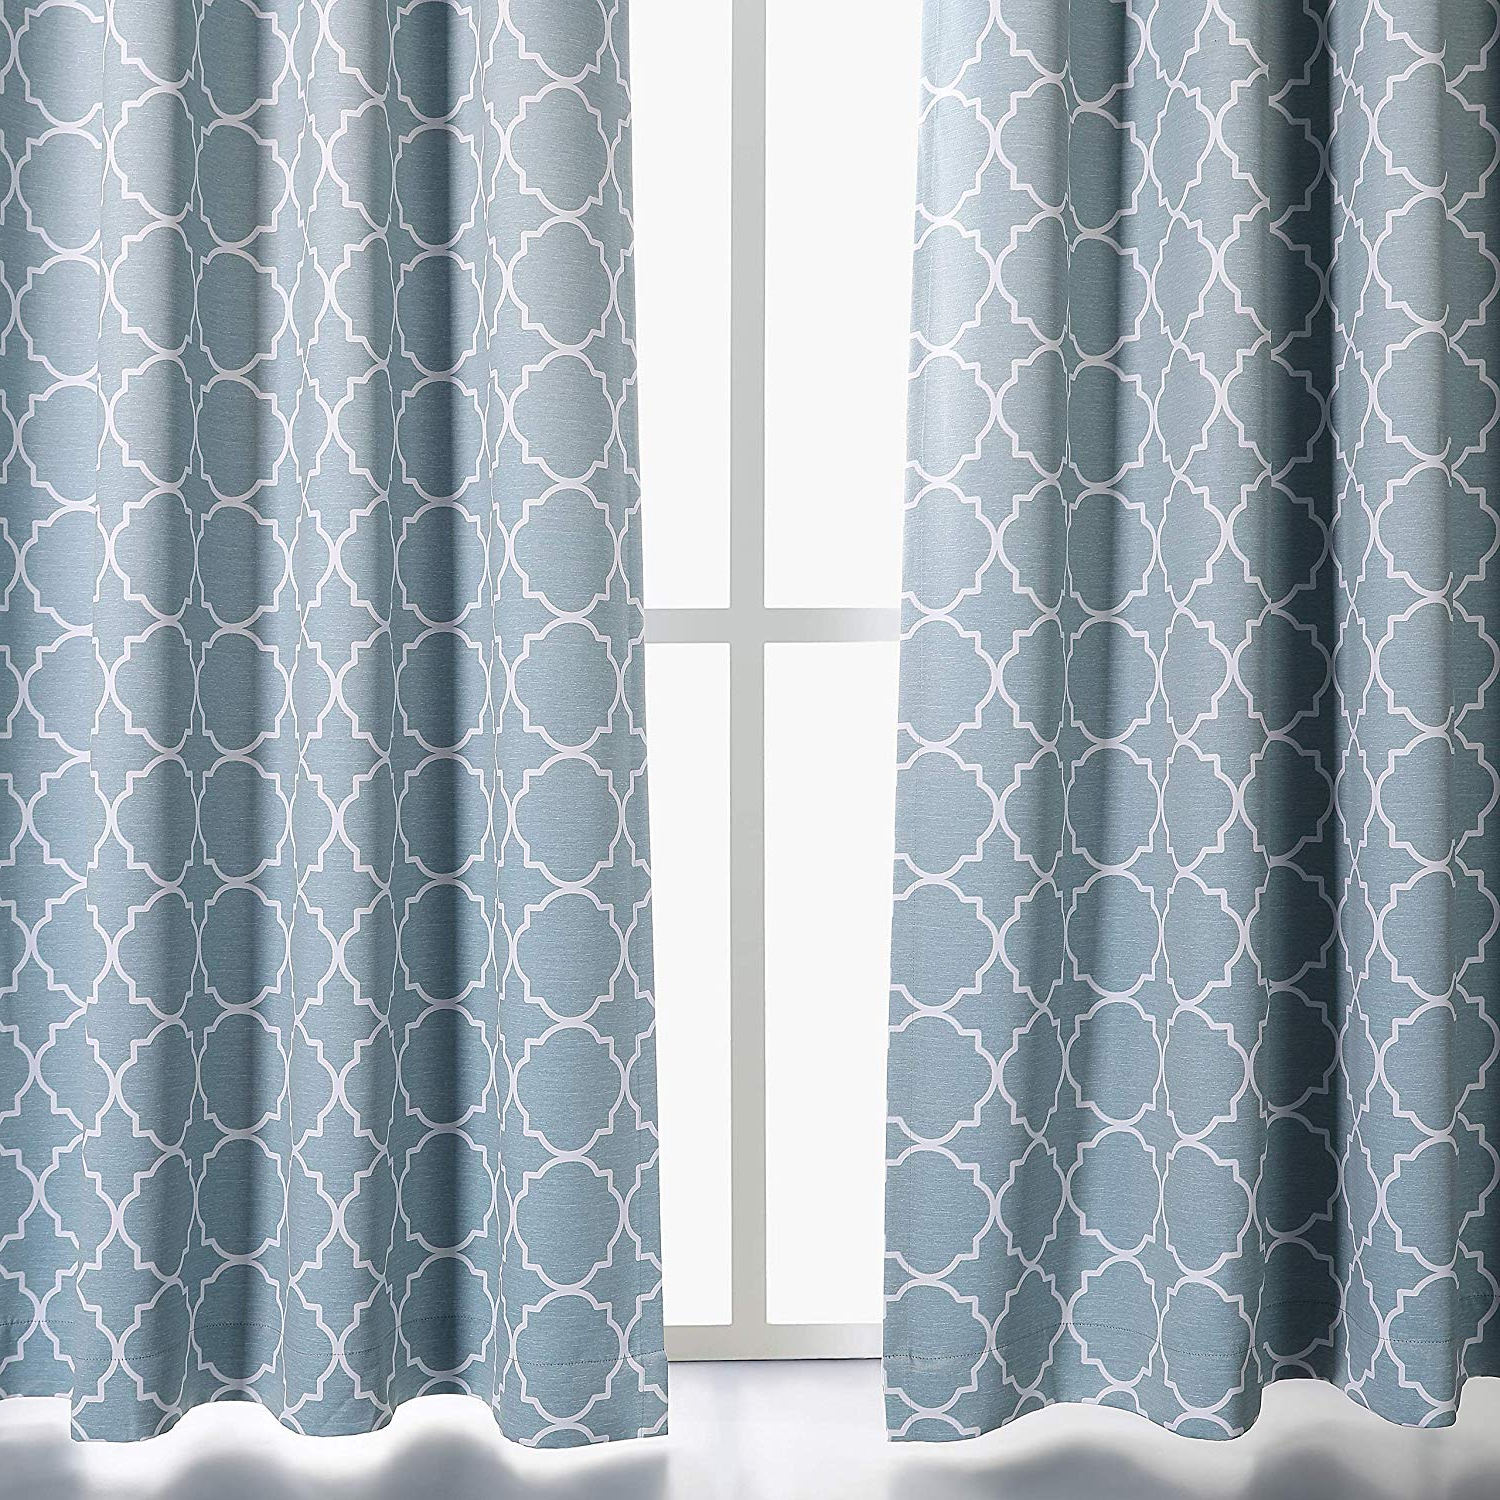 "Moroccan Style Thermal Insulated Blackout Curtain Panel Pairs With Most Recent Mysky Home Grommet Thermal Insulated Blackout Curtains For Bedroom Lattice Moroccan Tile Print Window Treatment Set For Living Room, Aqua, 52"" W X 63"" (Gallery 14 of 20)"